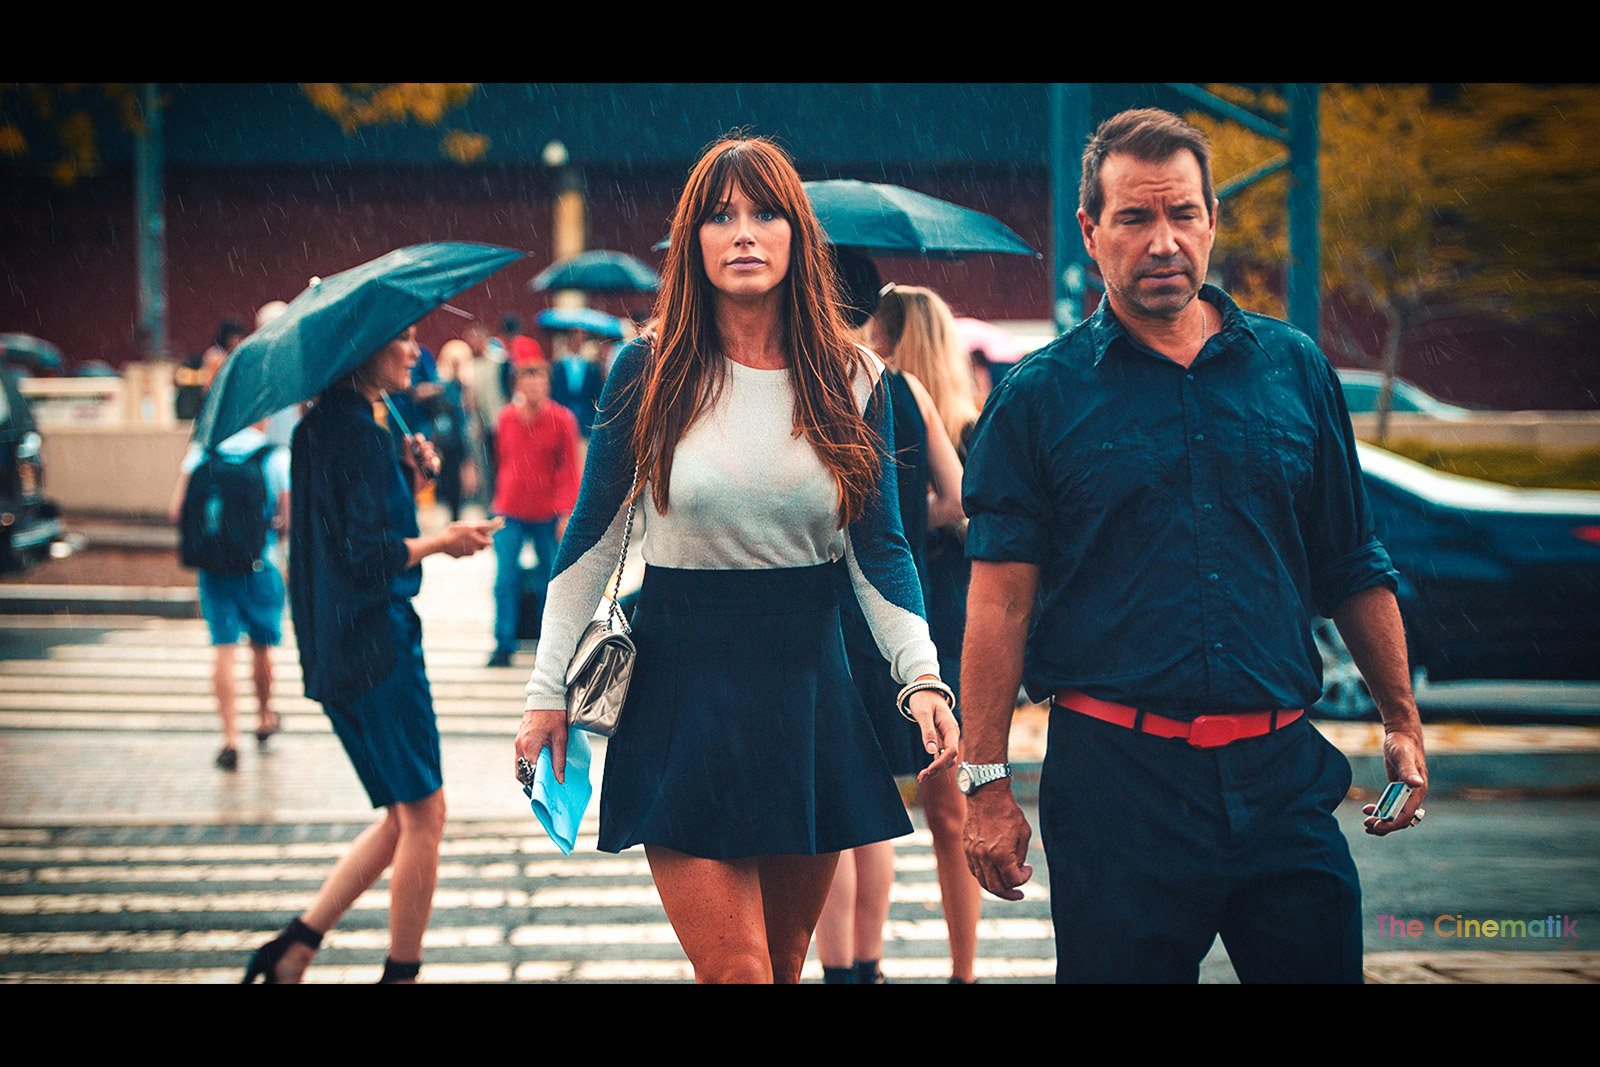 Gorgeous mini-skirt guest under the rain at New York Fashion Week cinematic photograph by Kamal Lahmadi/THE CINEMATIK